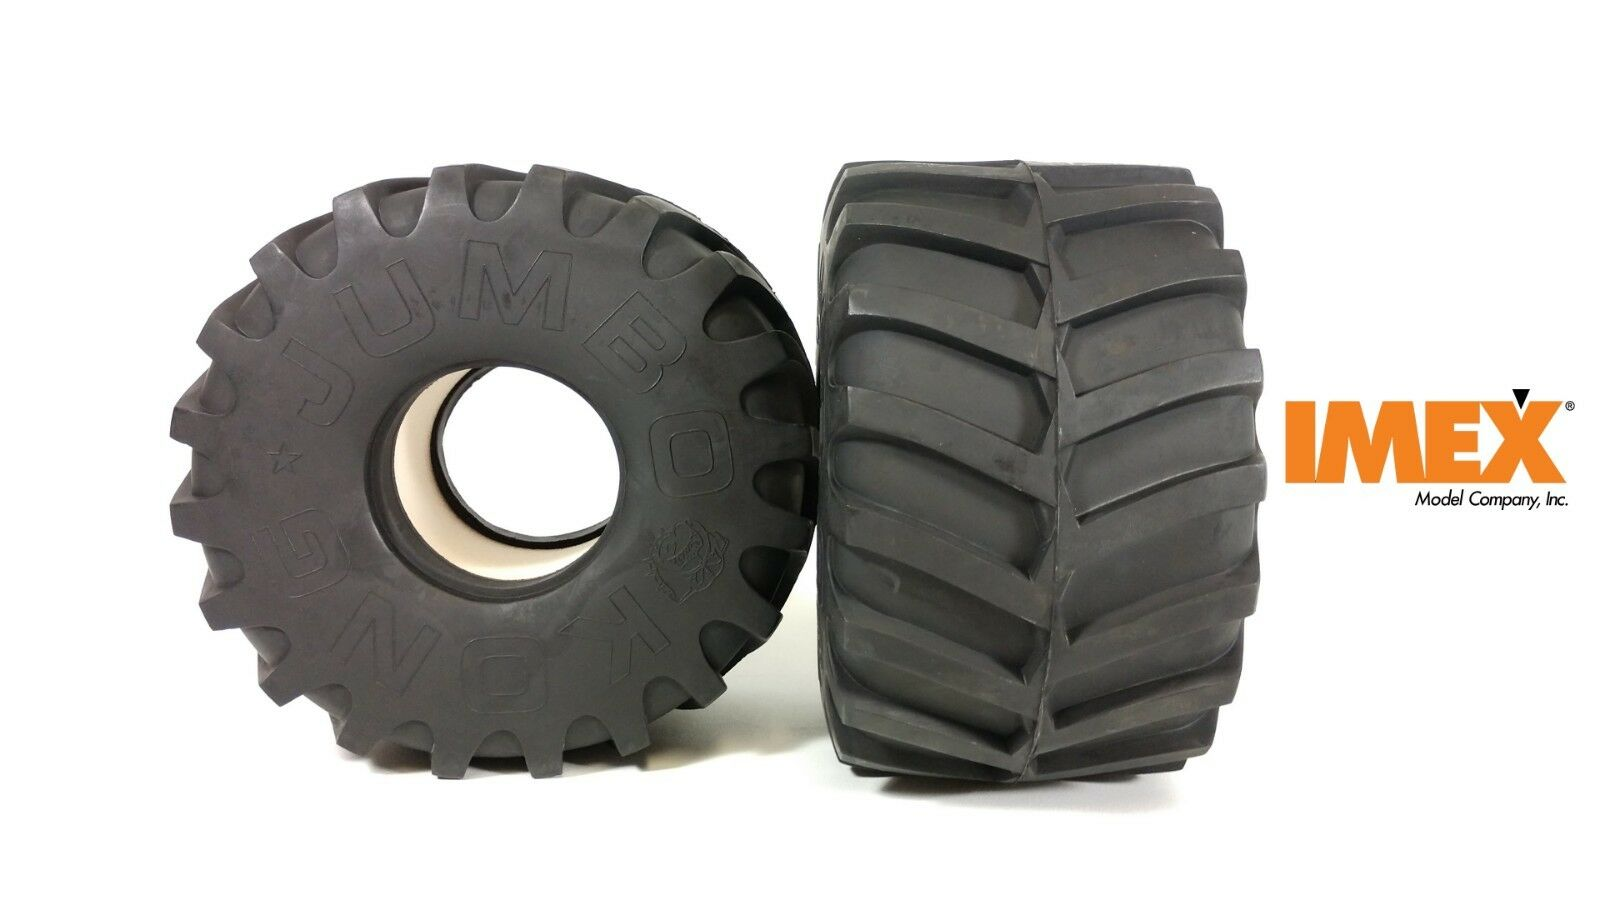 IMEX Jumbo Kong Tires (8.5  Tall x 5  Wide Tires ) (1 Pair)